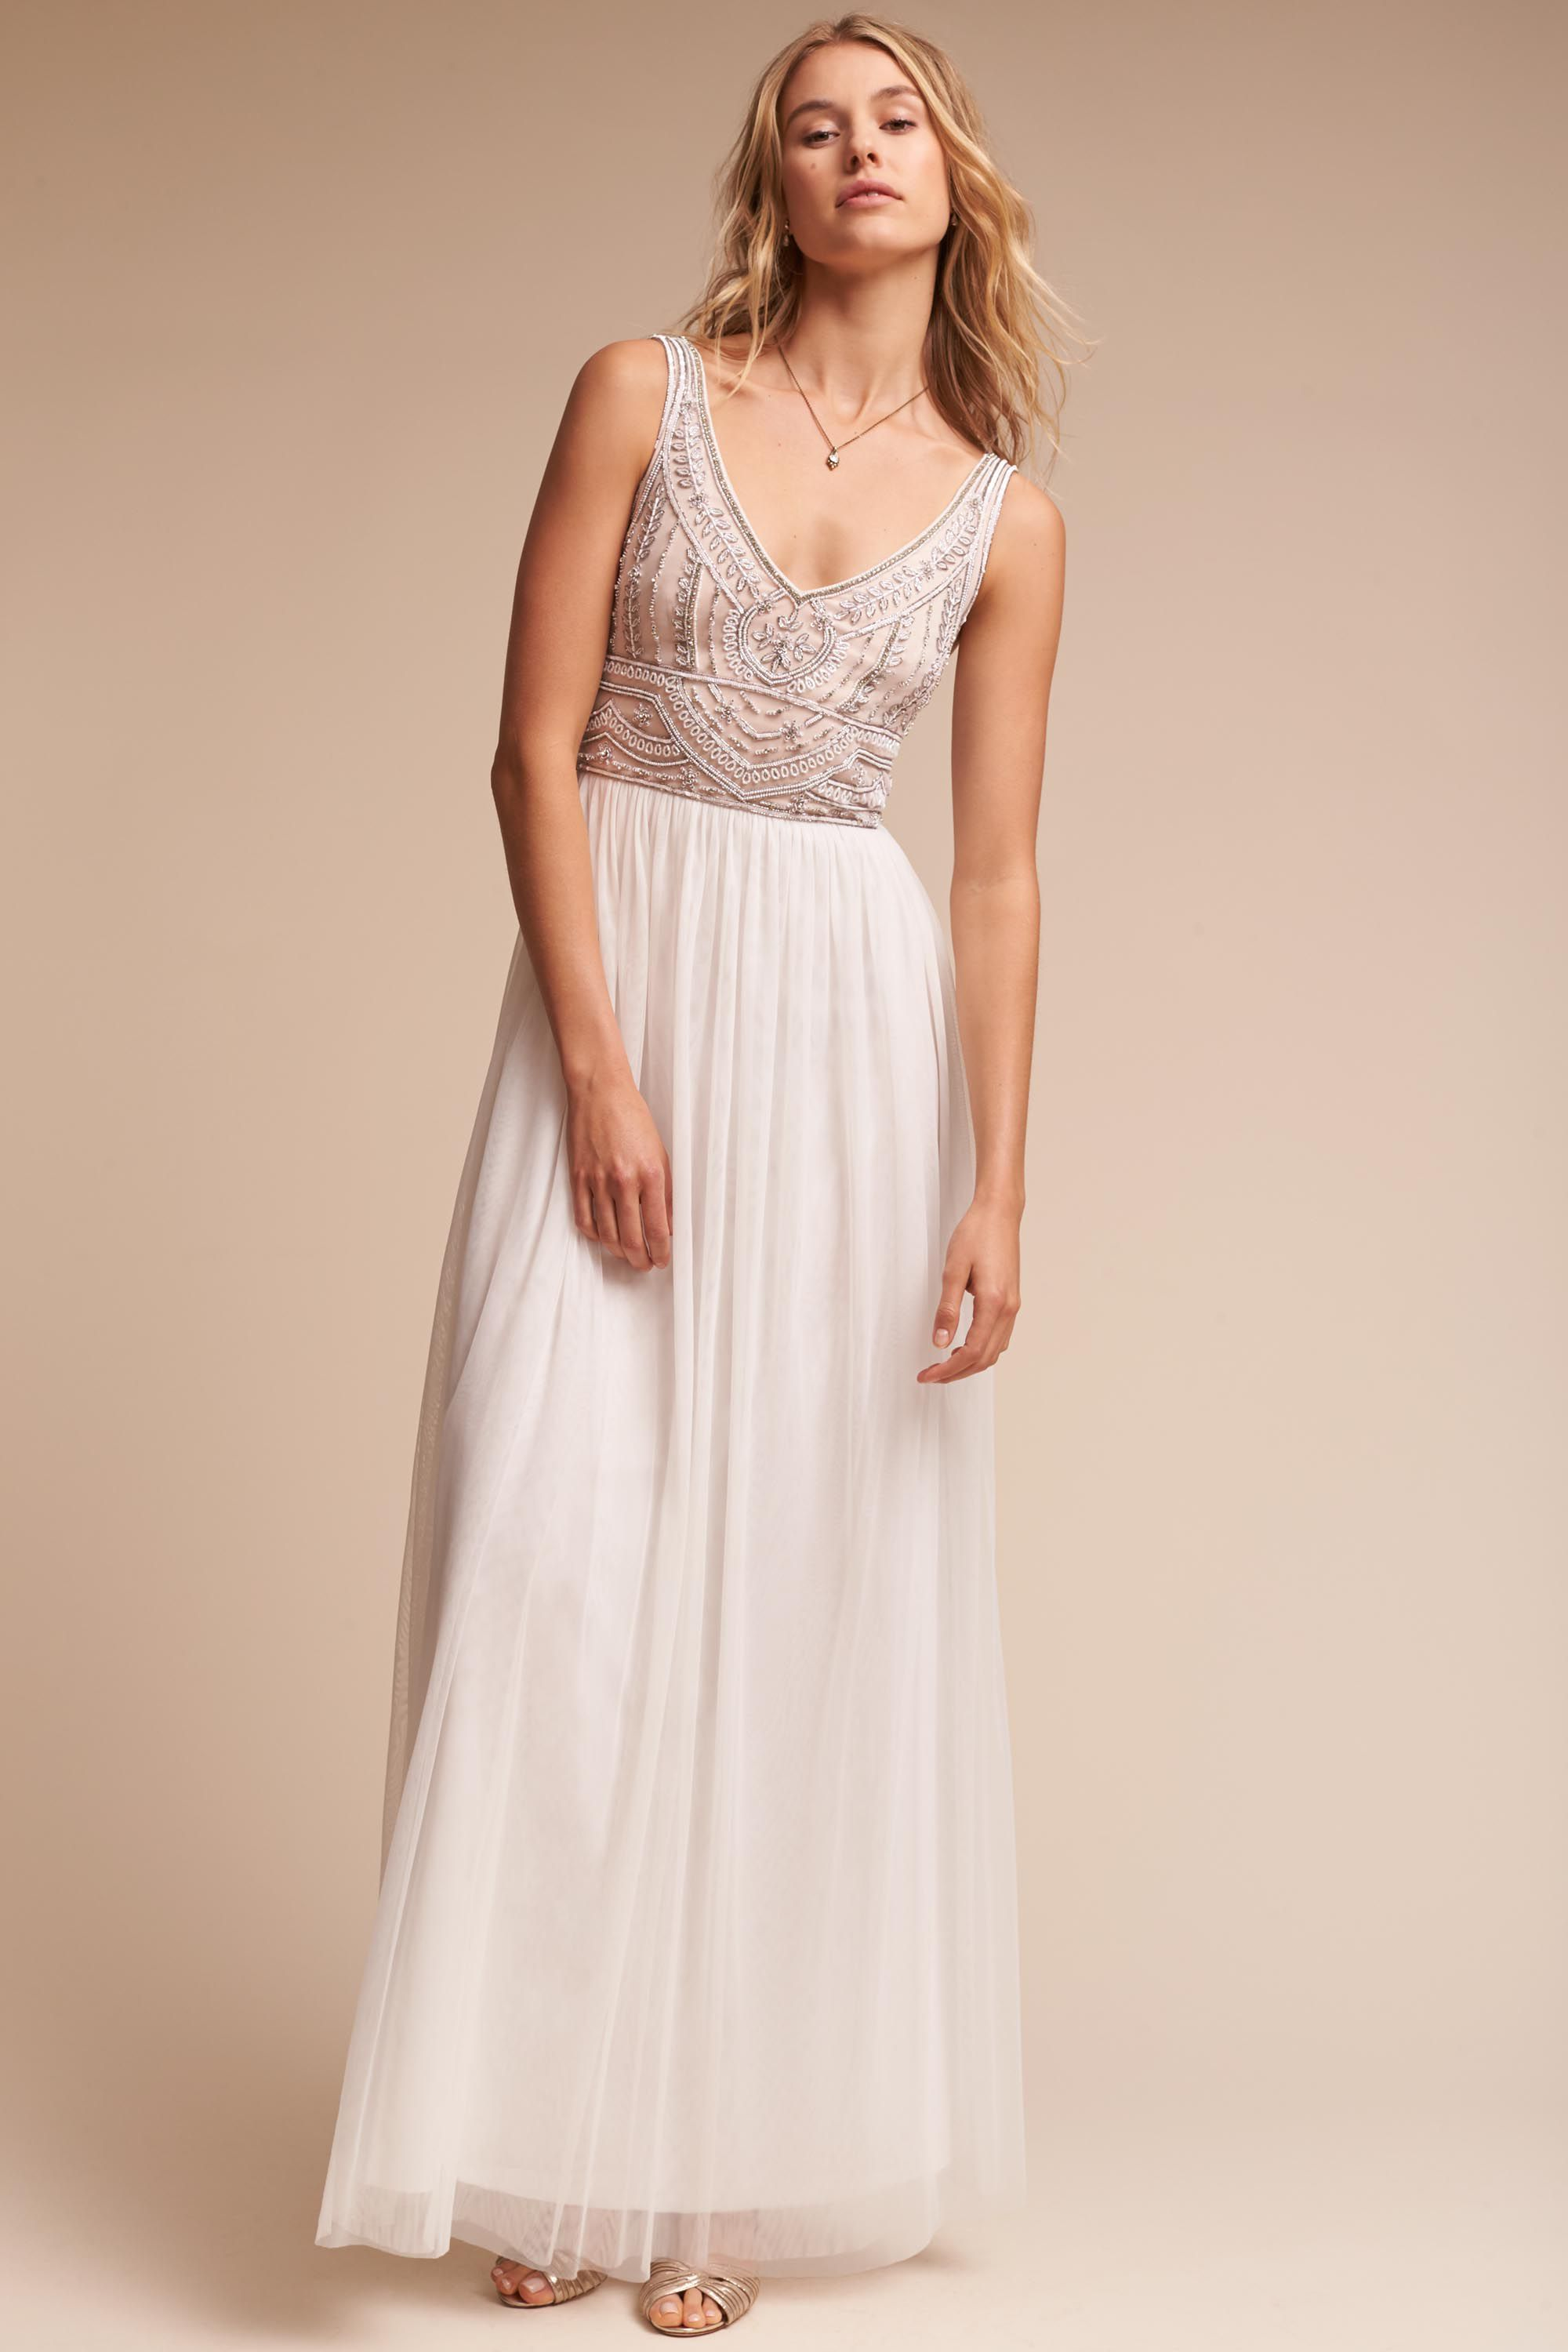 BHLDN - Bhldn - Sterling Dress (ivory)